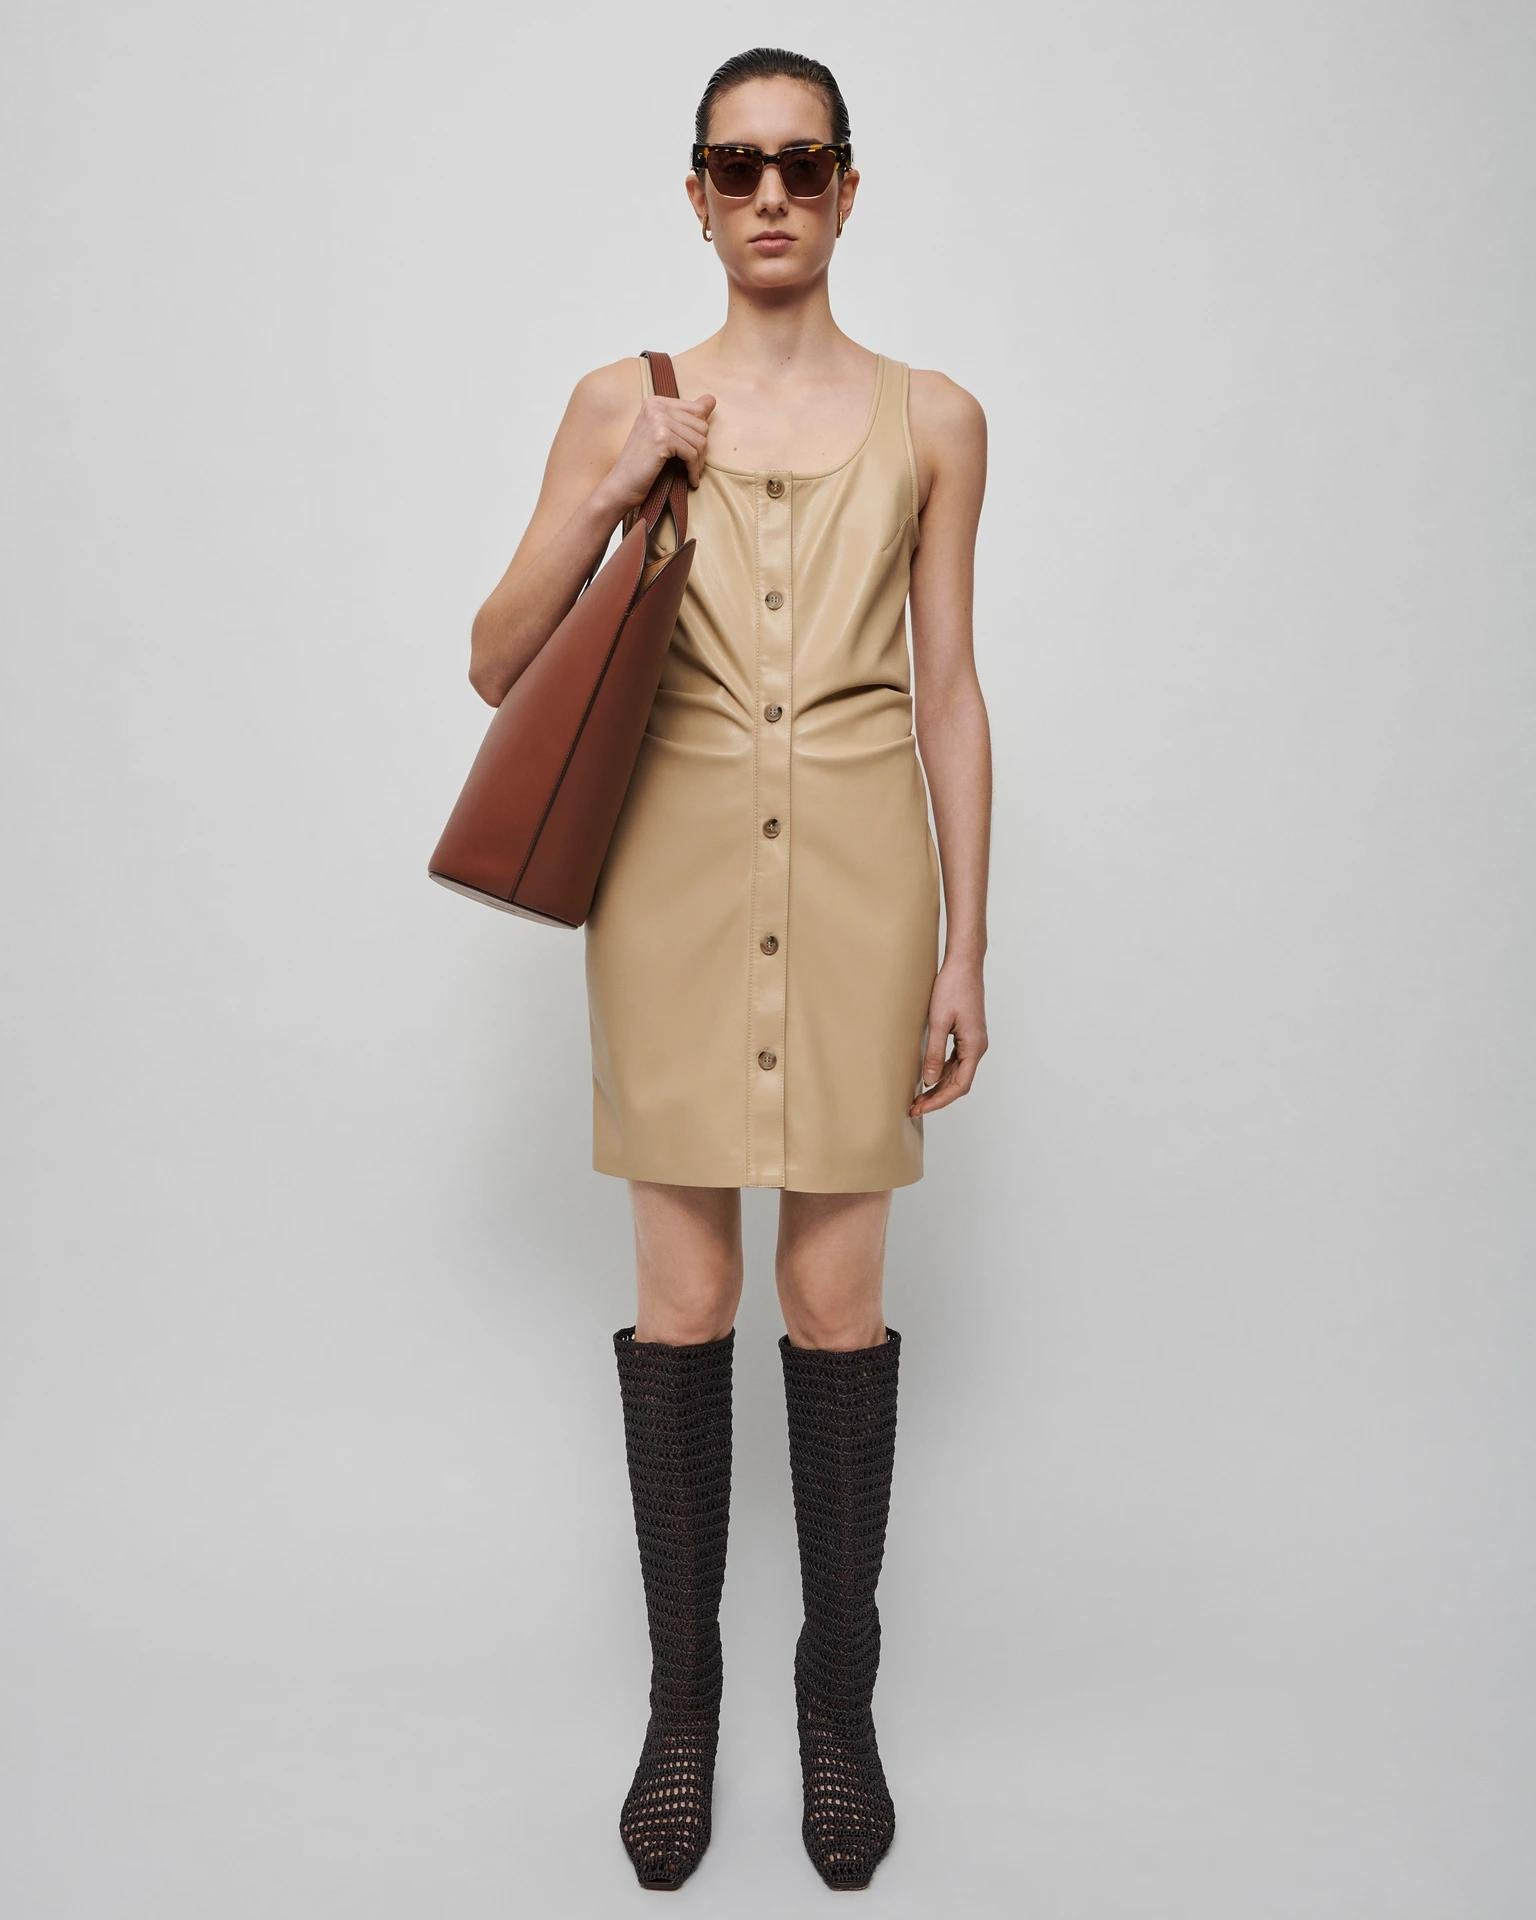 ERNIE - Ruched vegan leather dress - Butter